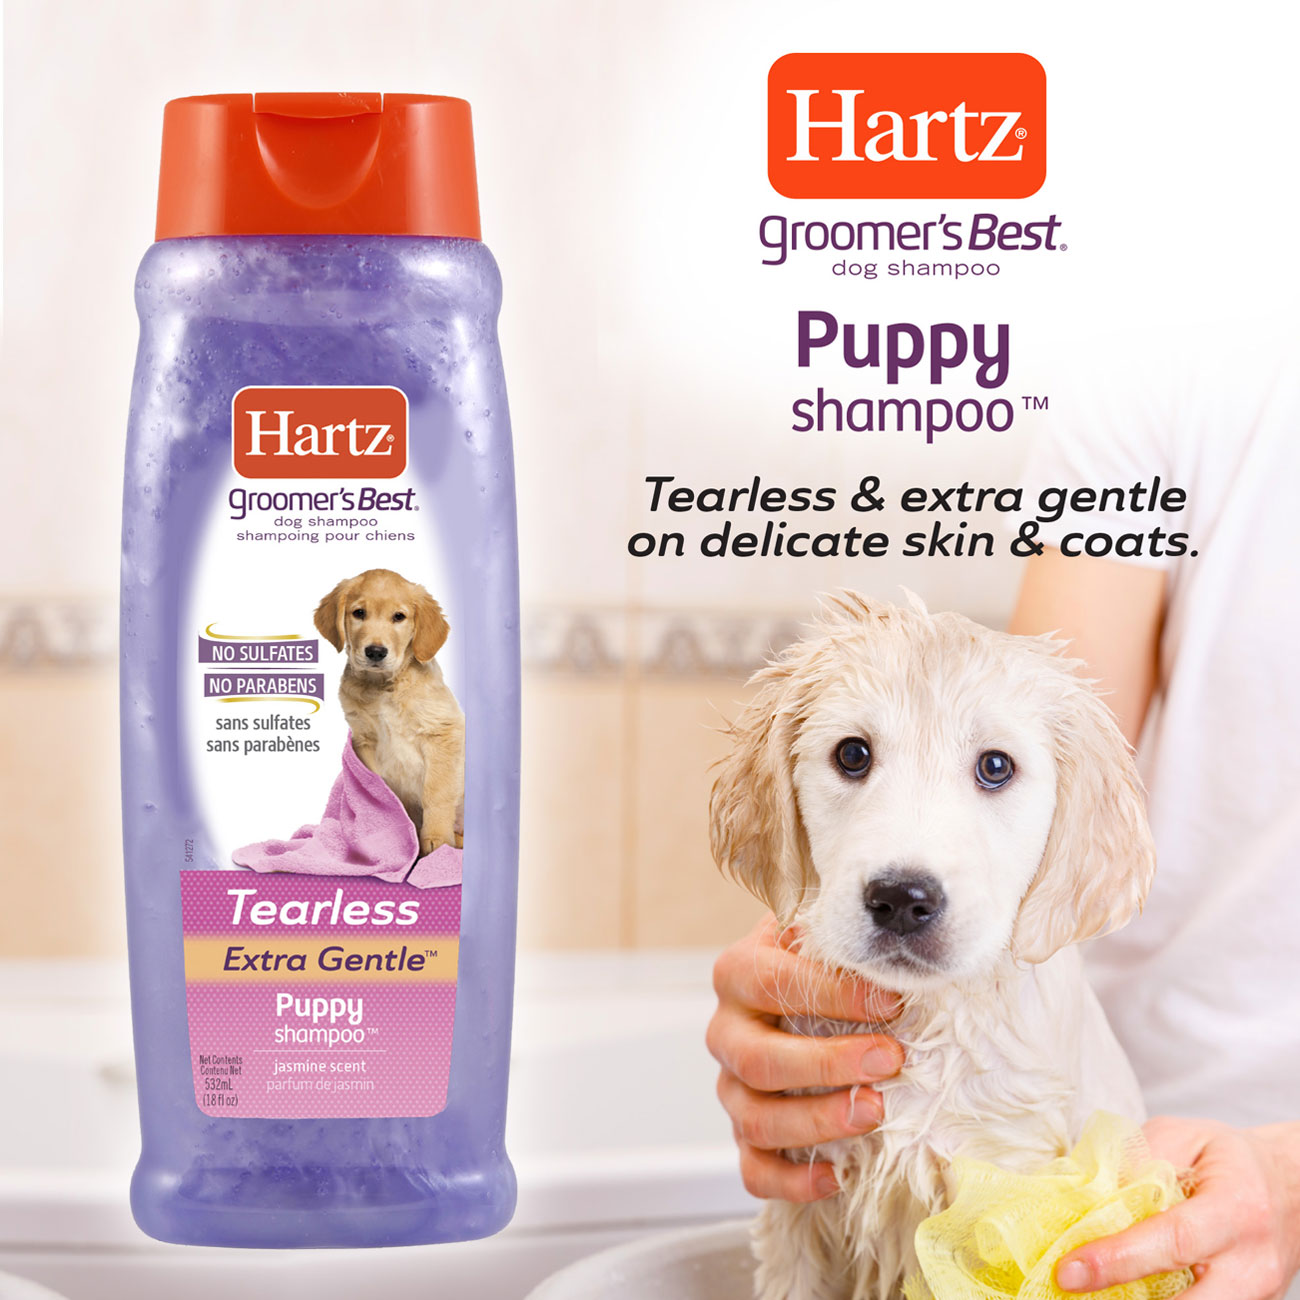 Hartz Groomers Best Puppy Shampoo. Tearless and extra gentle on delicate skin and coats.